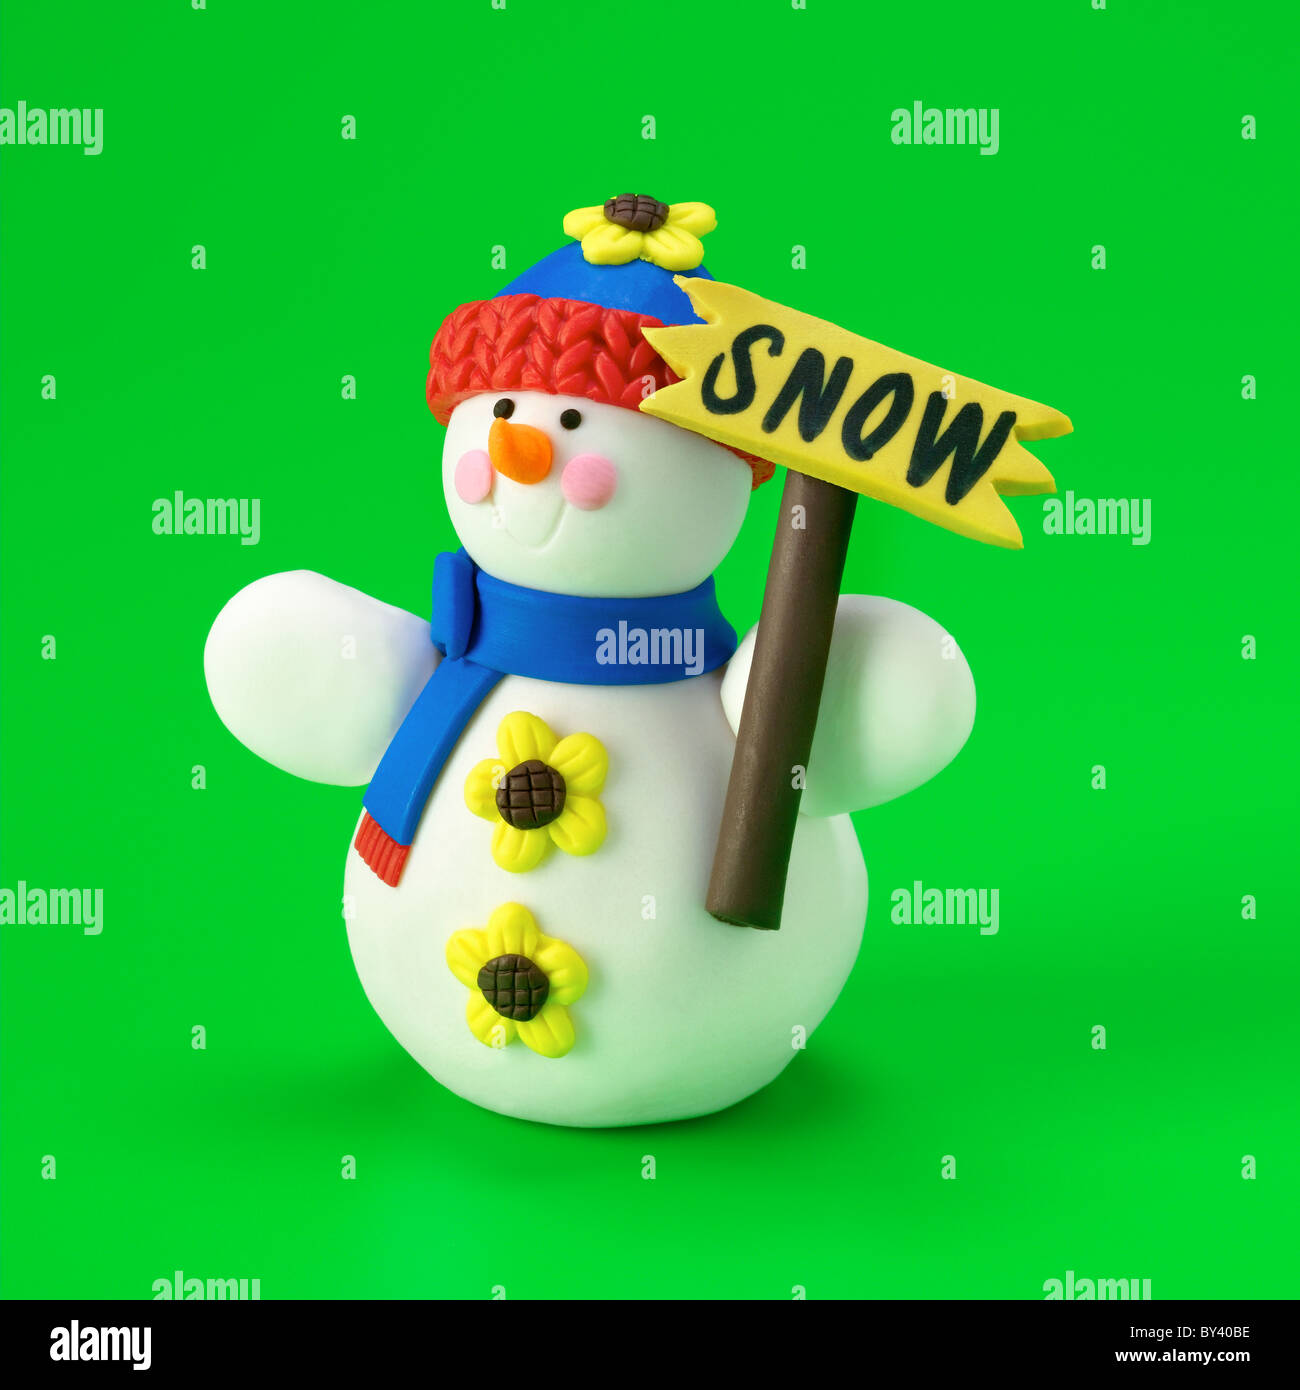 Frosty Snowman Stock Photos & Frosty Snowman Stock Images - Alamy